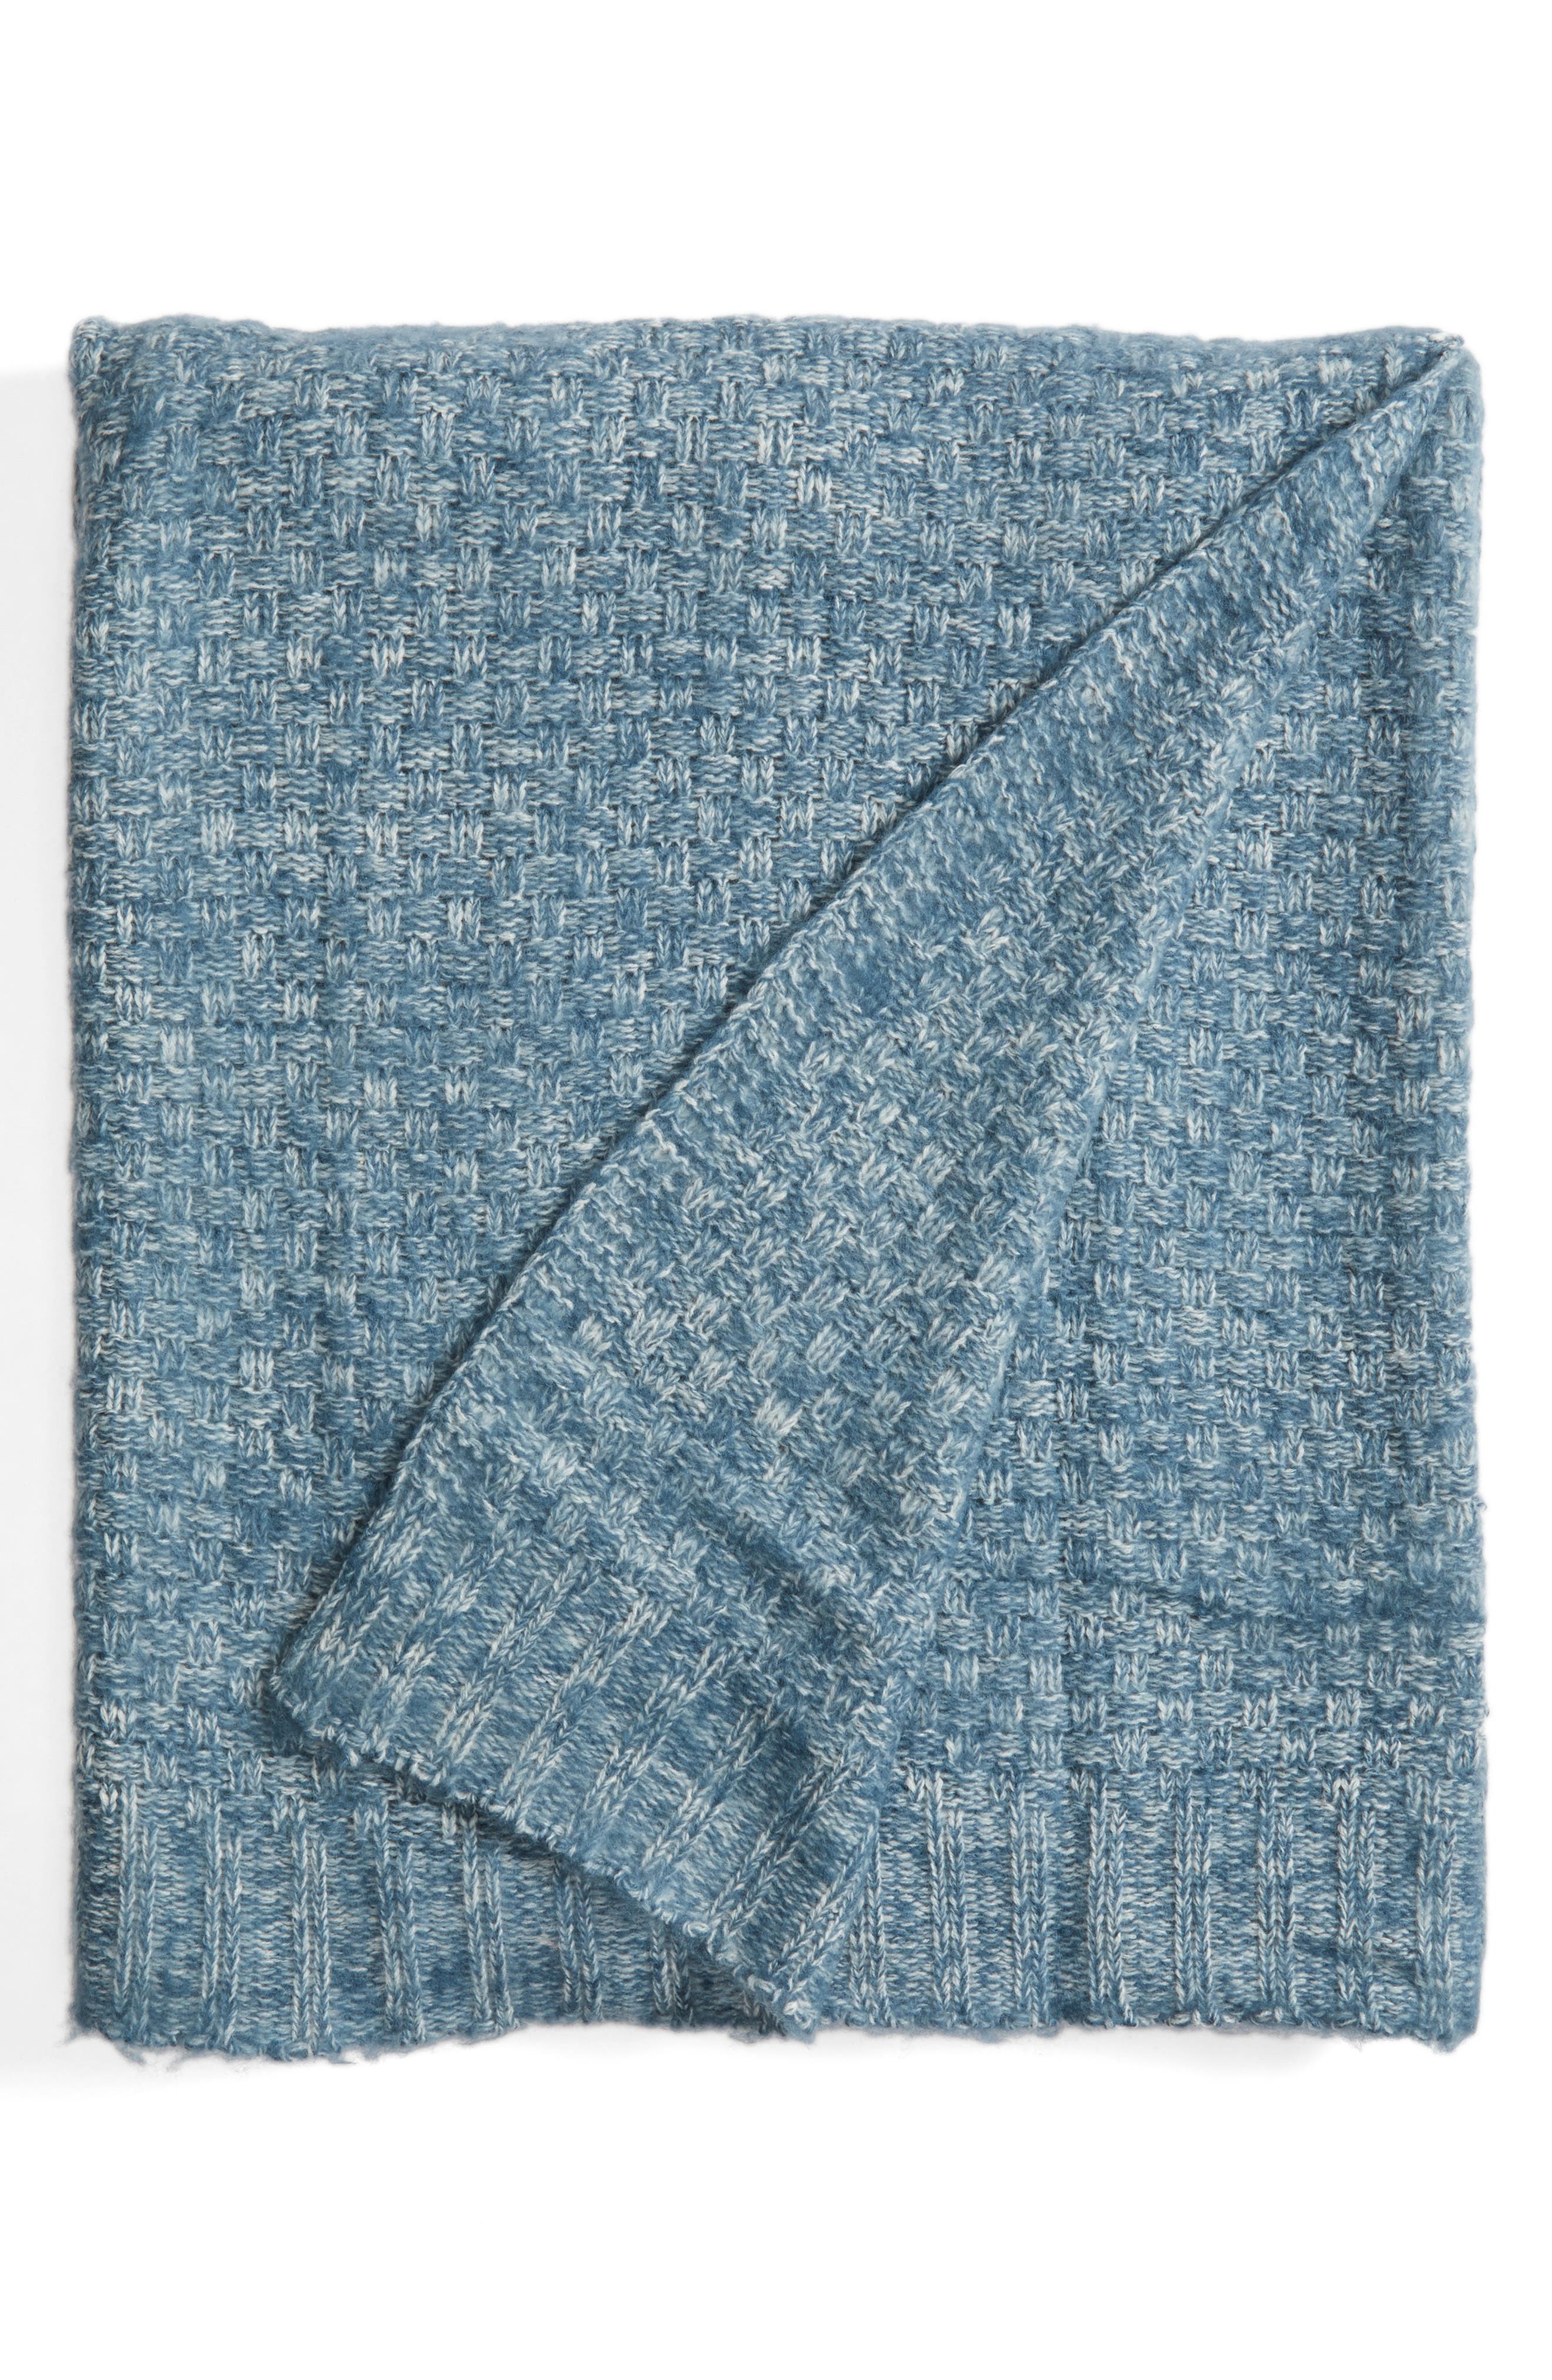 Nordstrom at Home Brushed Seed Stitch Throw Blanket